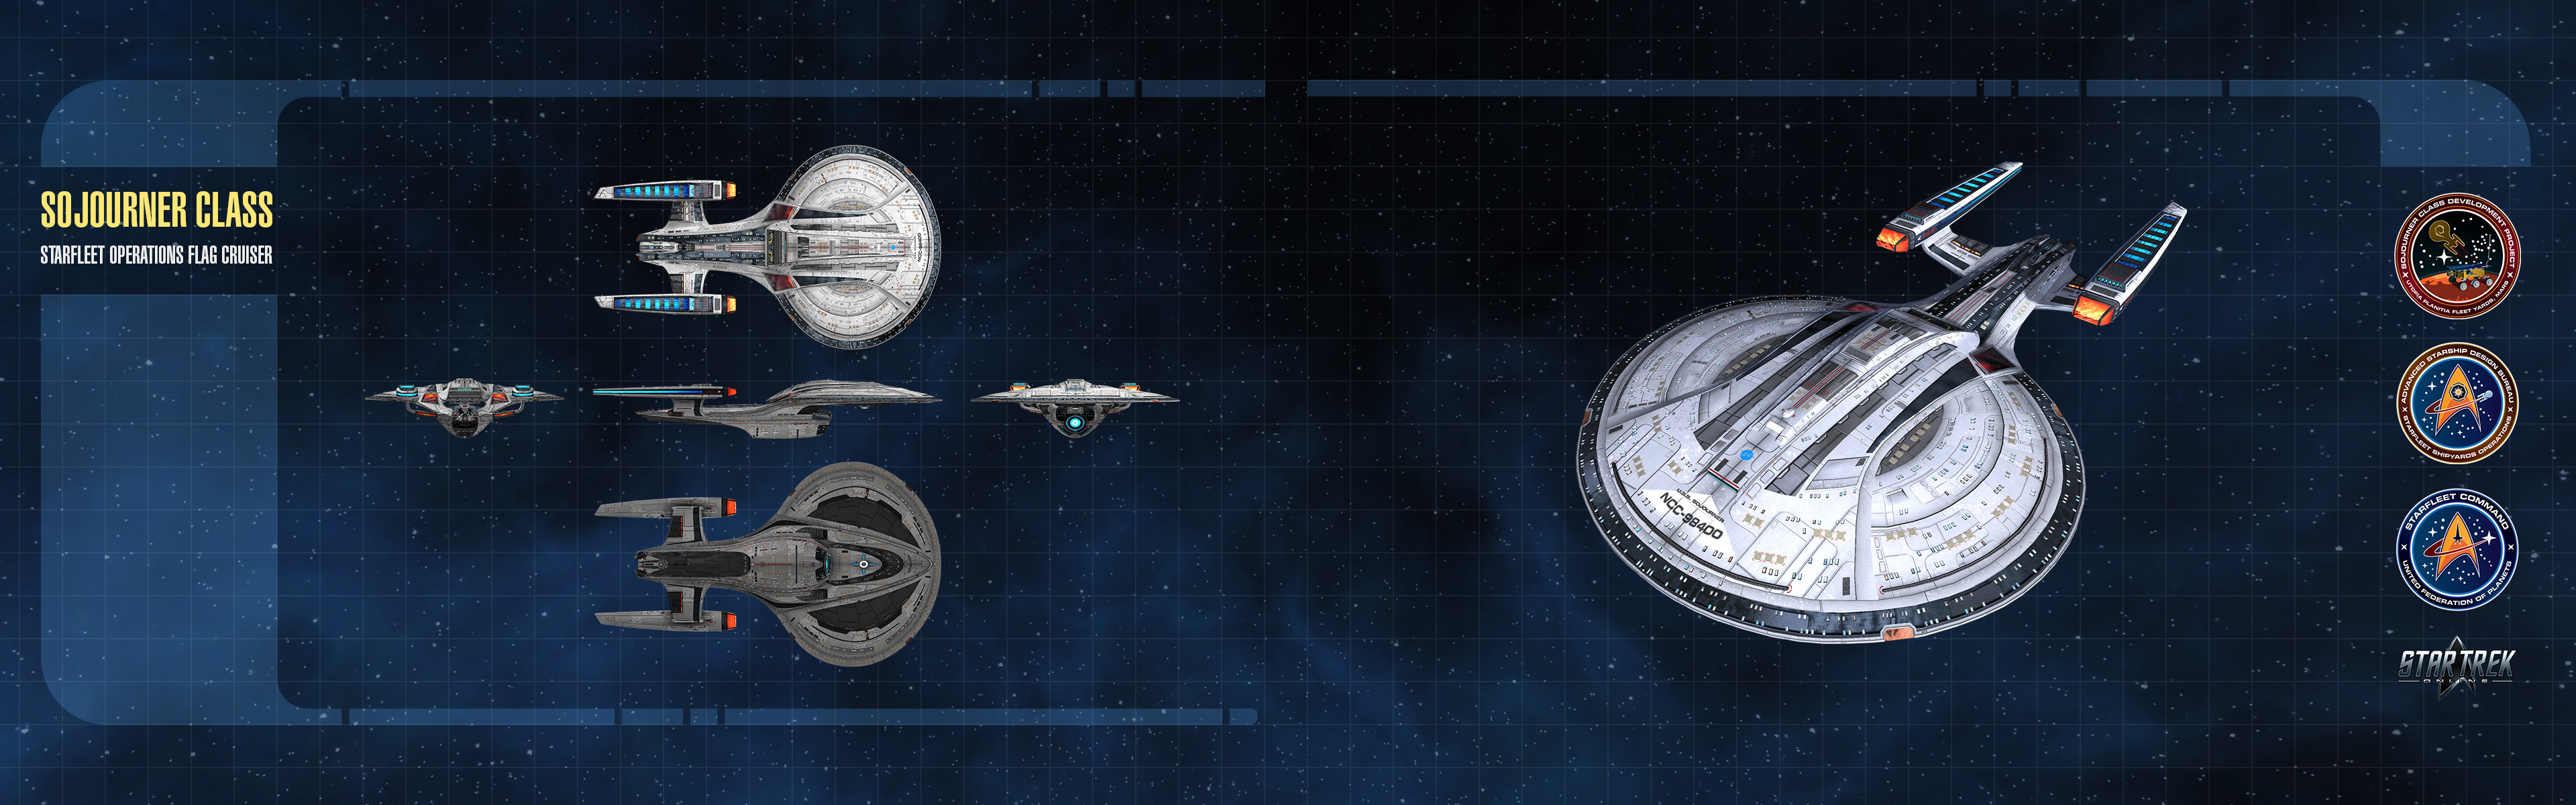 Orthographic Wallpaper. I also created the various Starfleet emblems on the right.